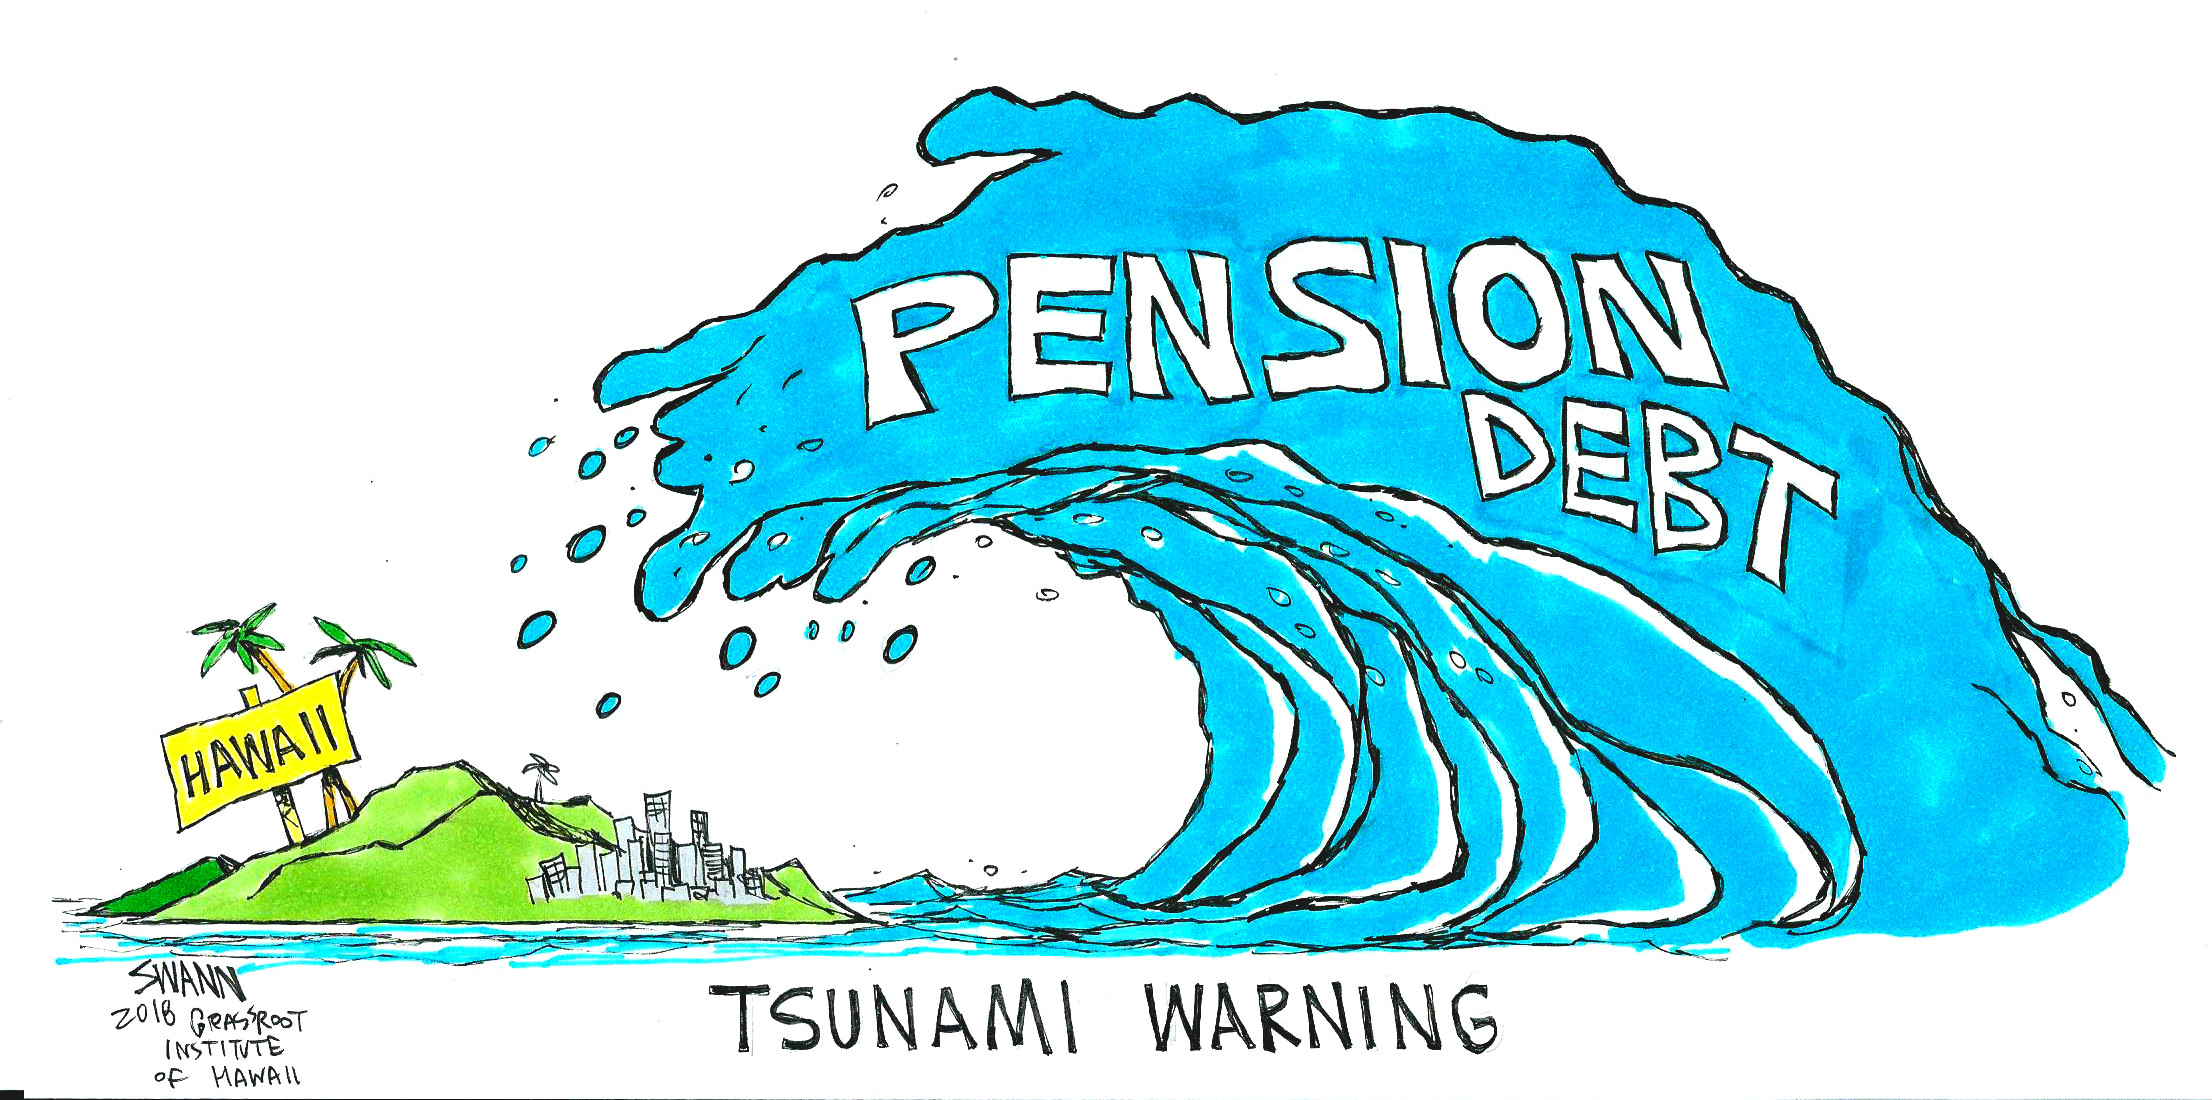 Pension debt tsunami hits Hawaii